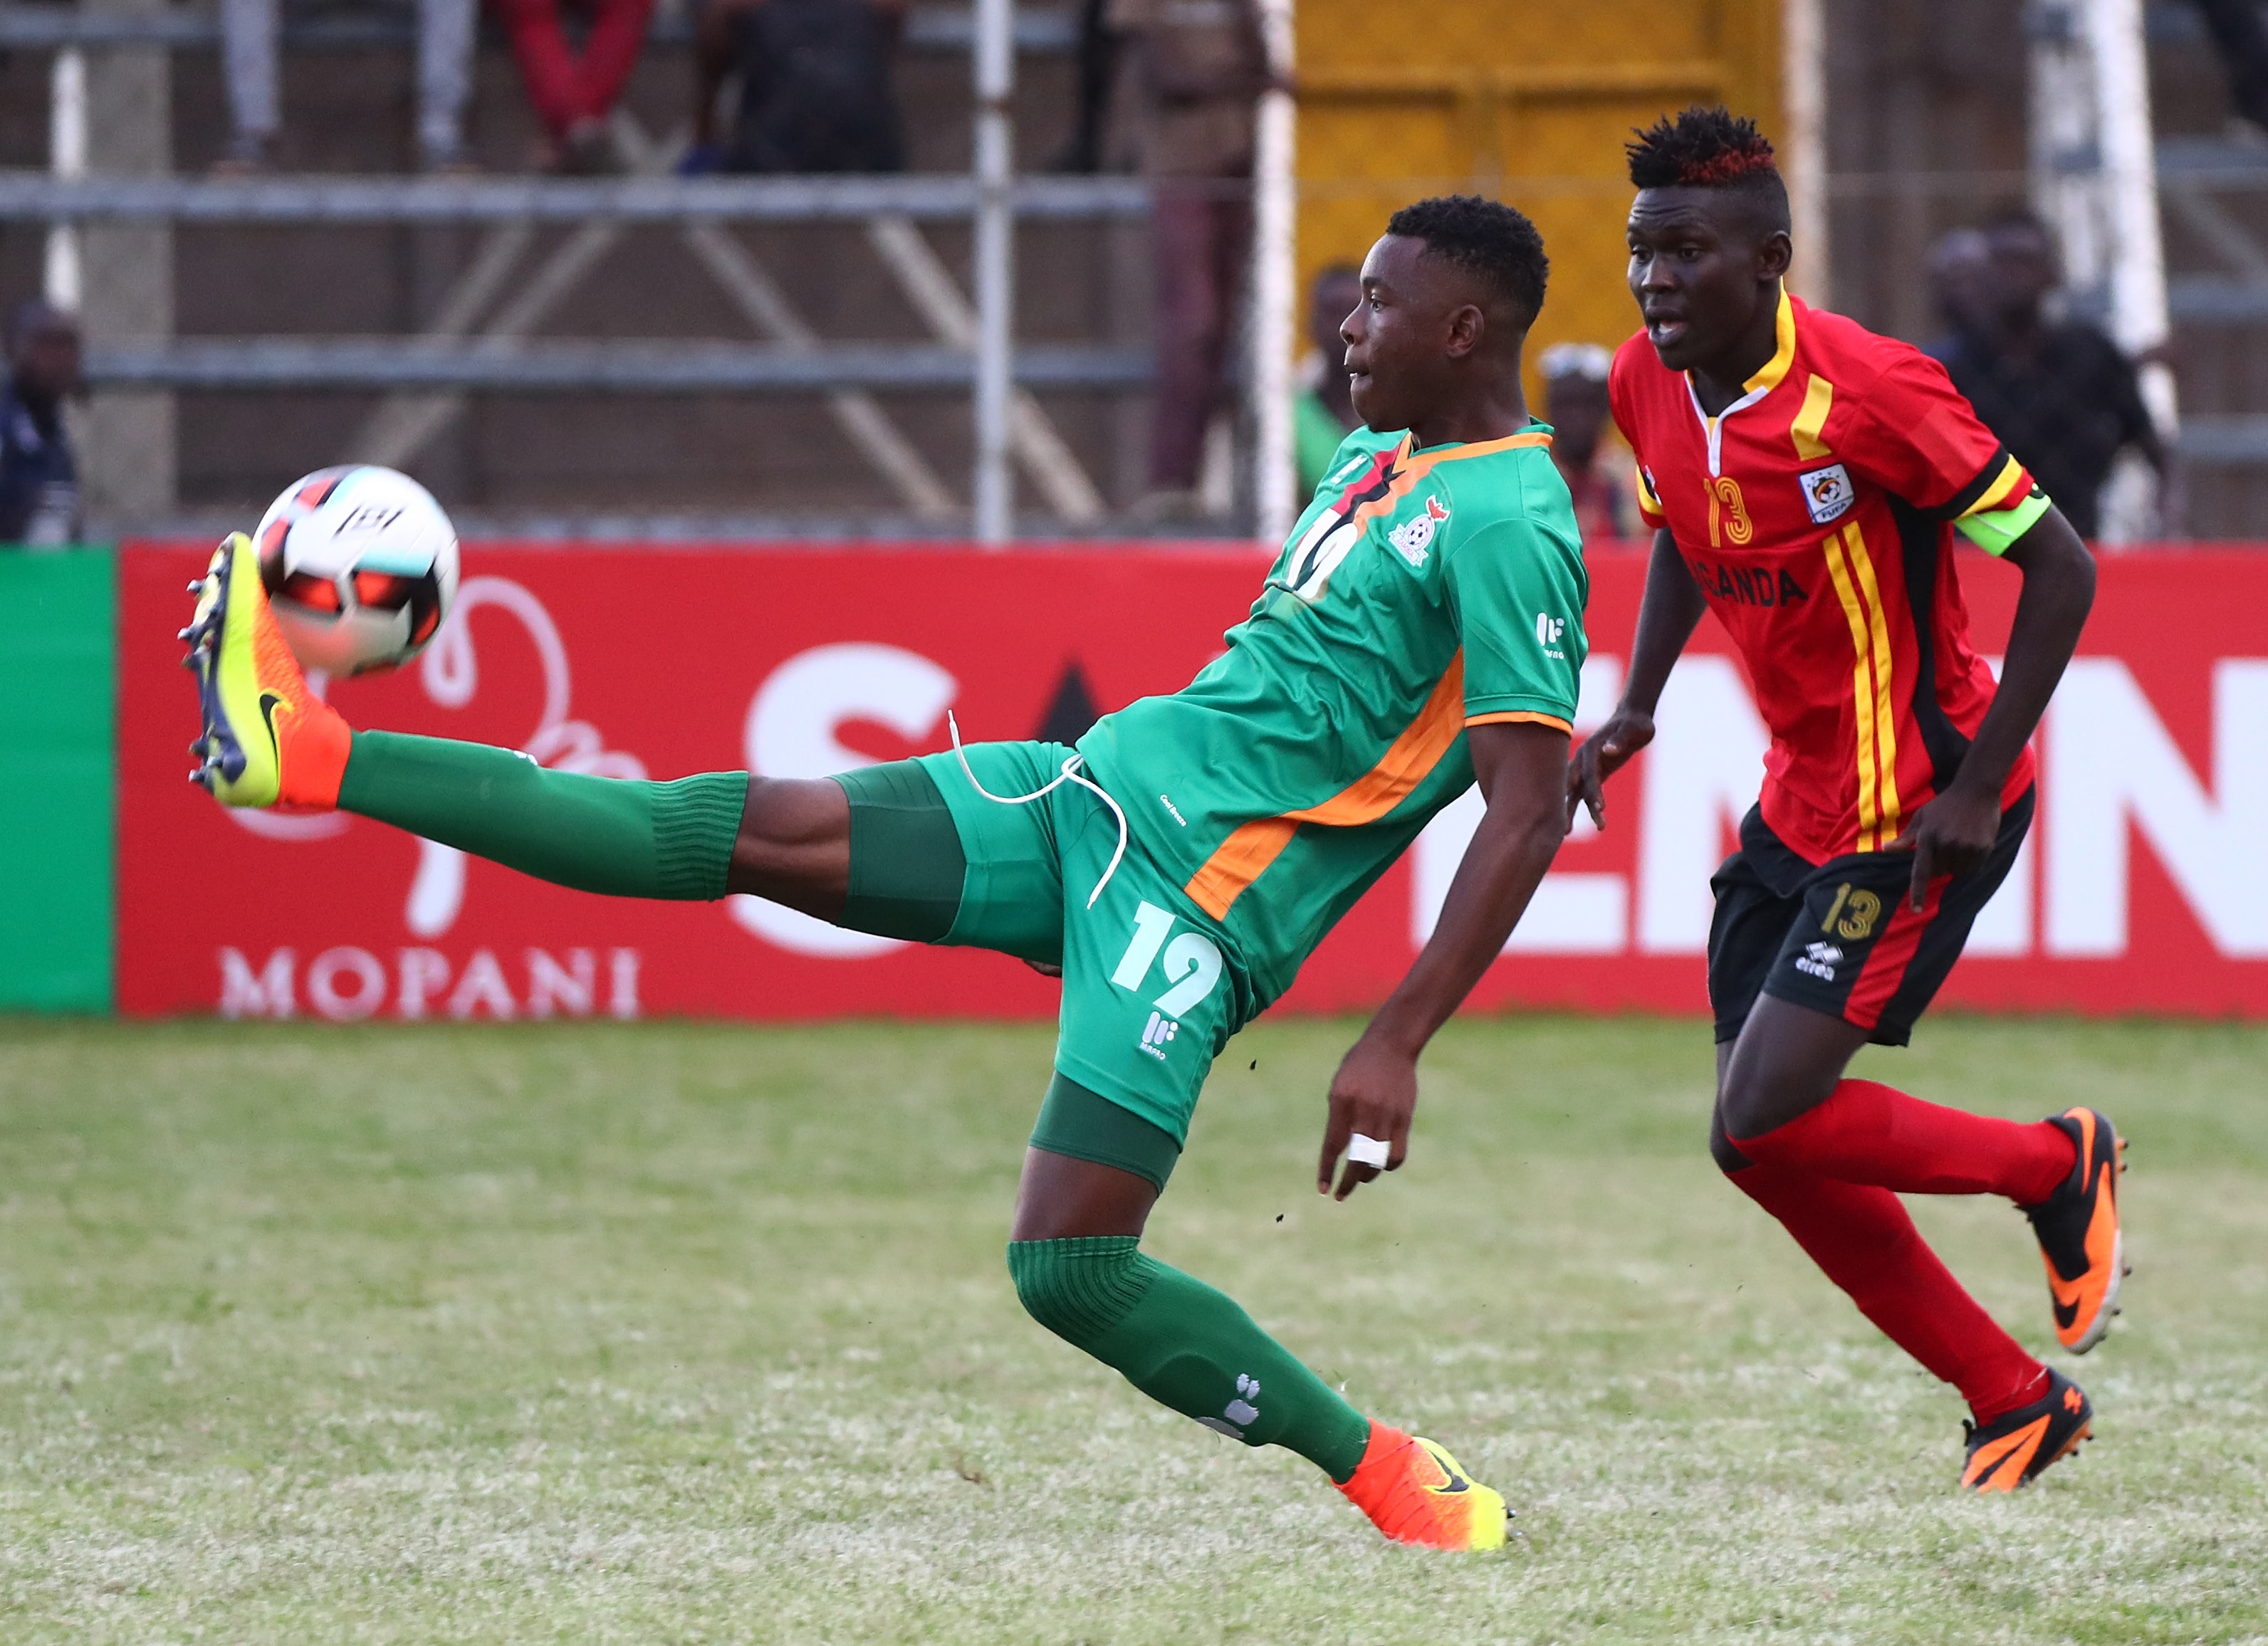 Shaban Muhammad(right) battling for the ball with Zambian defender Ngosa Sunzu yesterday in a game he scored a brace to cap his debut.